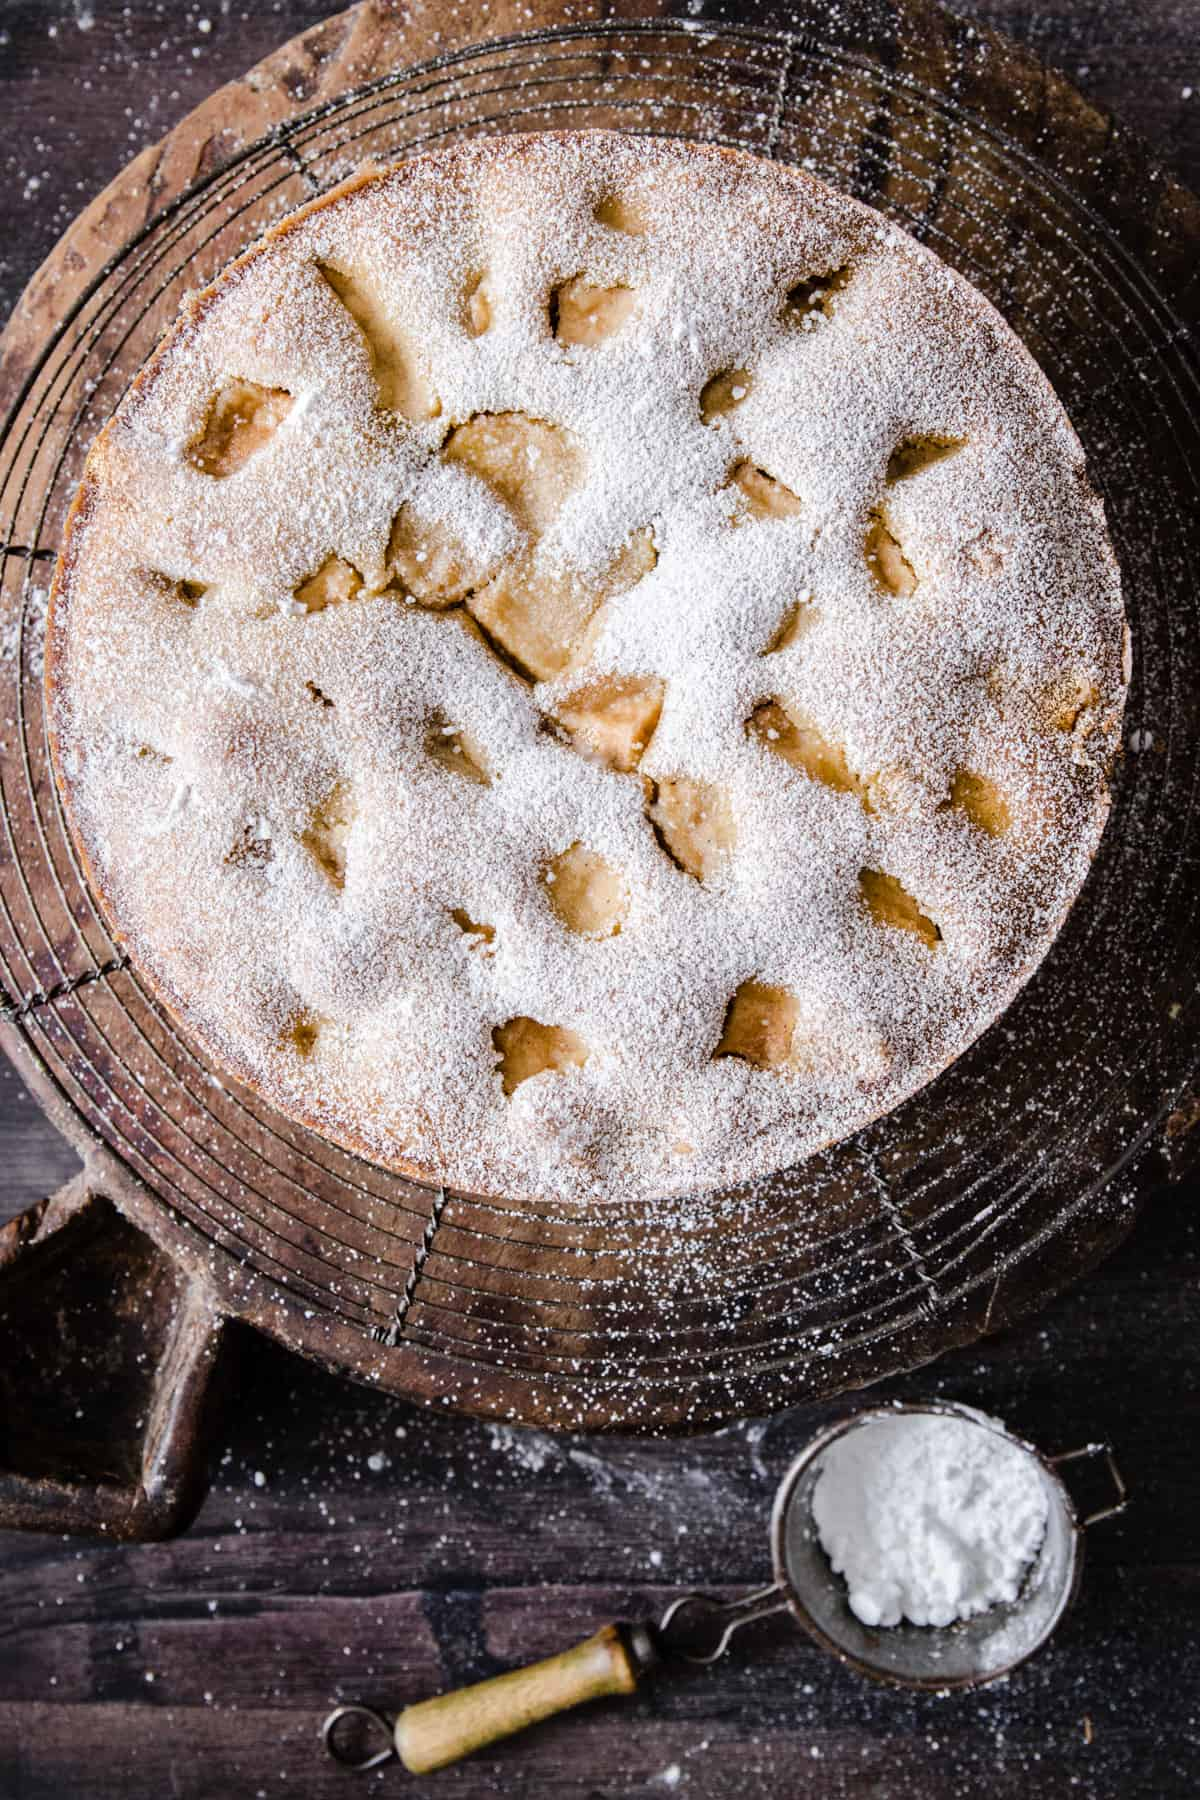 Apple cake on a cooling rack next to a knife and a sifter of icing sugar